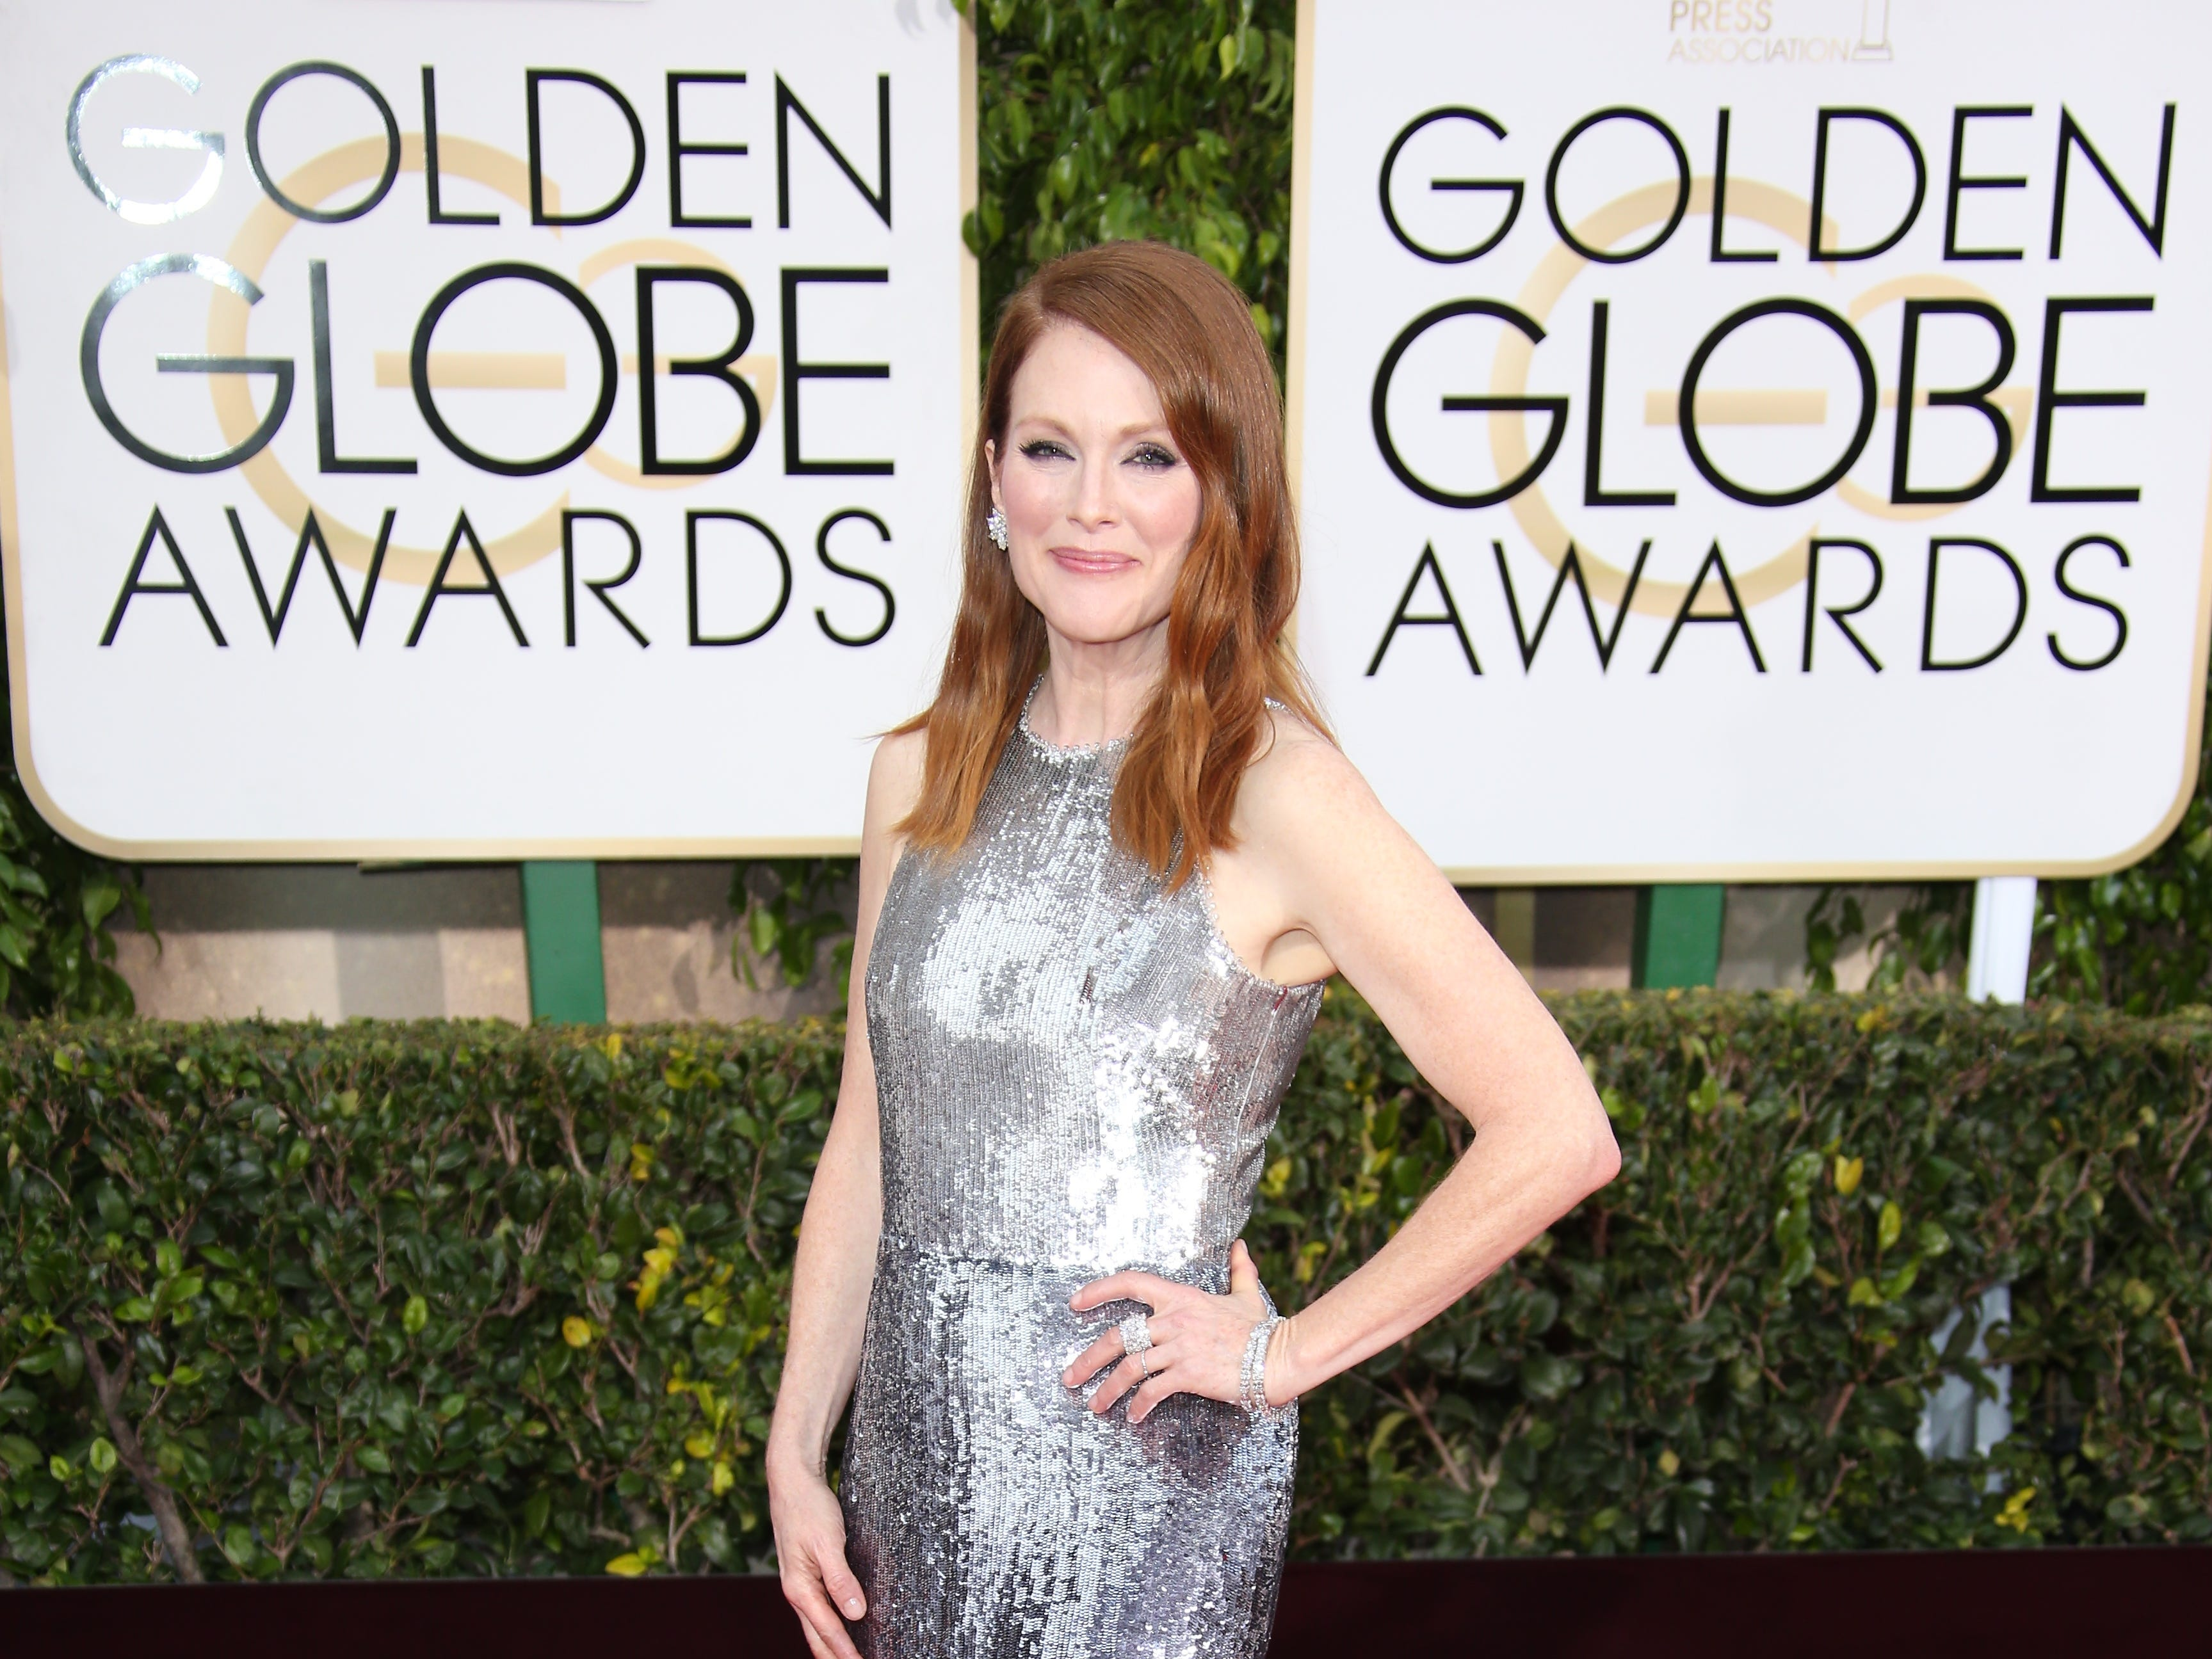 Julianne Moore arrives at the 72nd annual Golden Globe Awards in 2015.